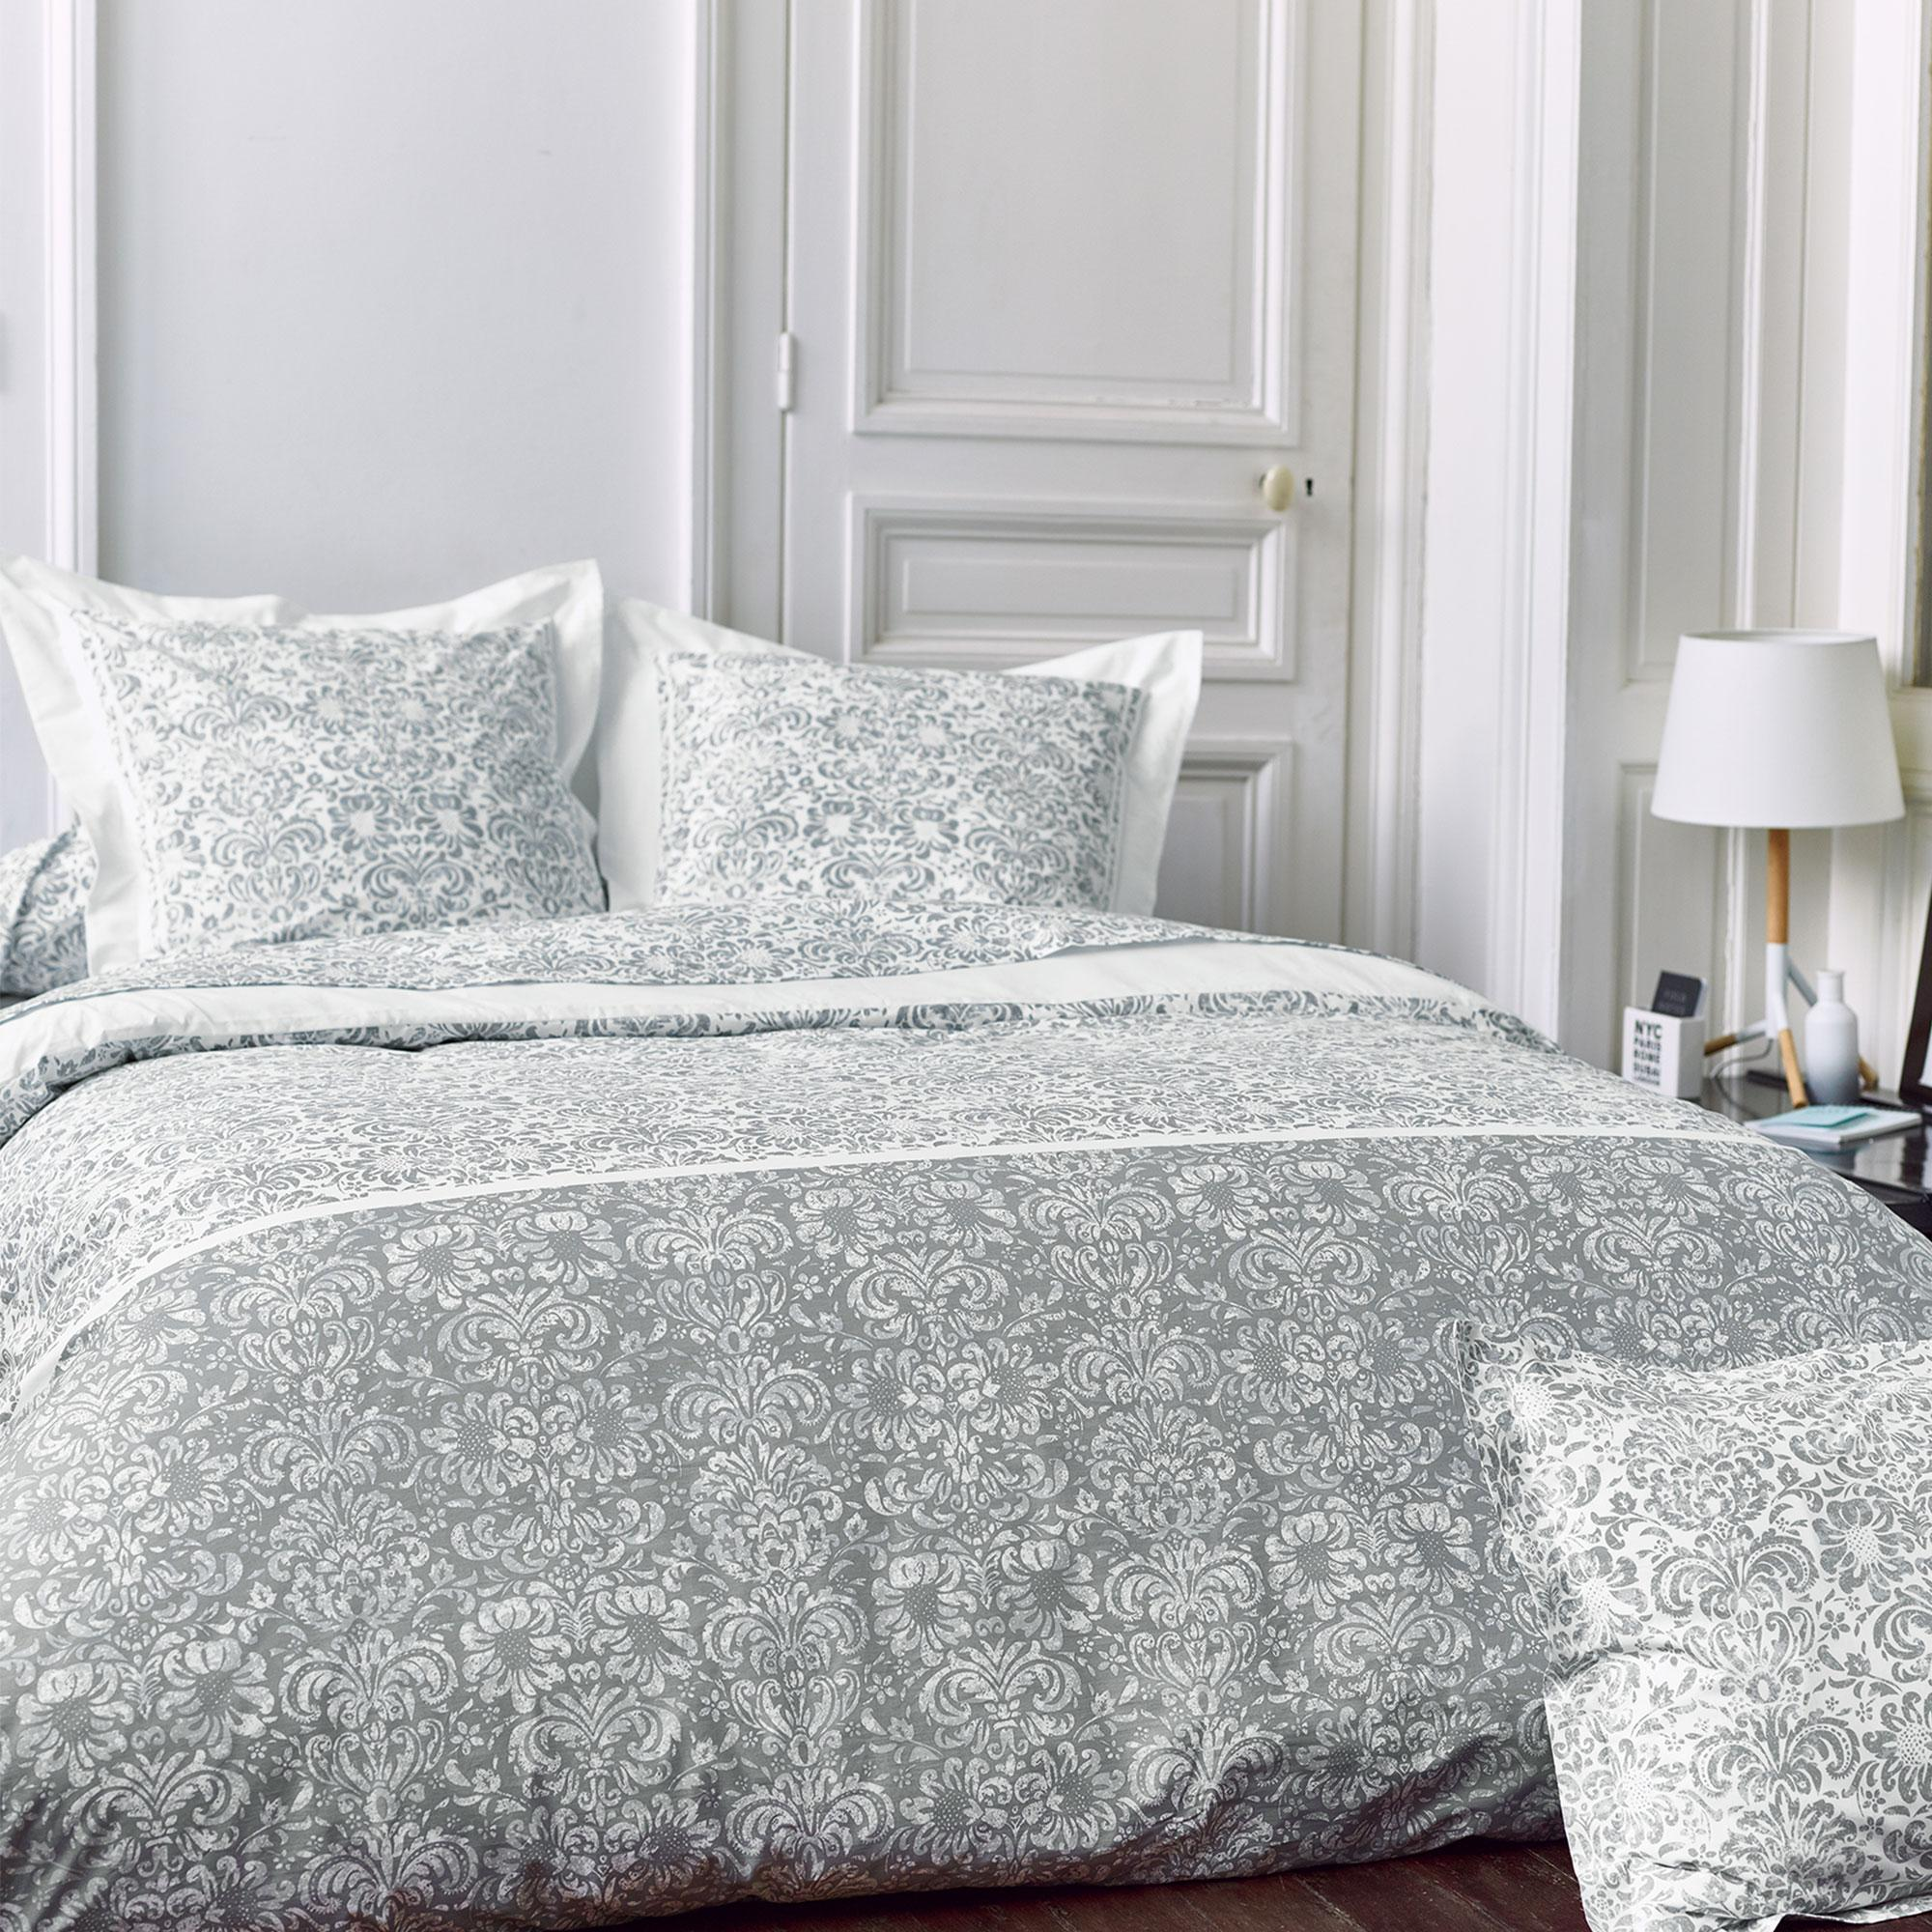 housse de couette 300x240 cm percale pur coton amboise. Black Bedroom Furniture Sets. Home Design Ideas